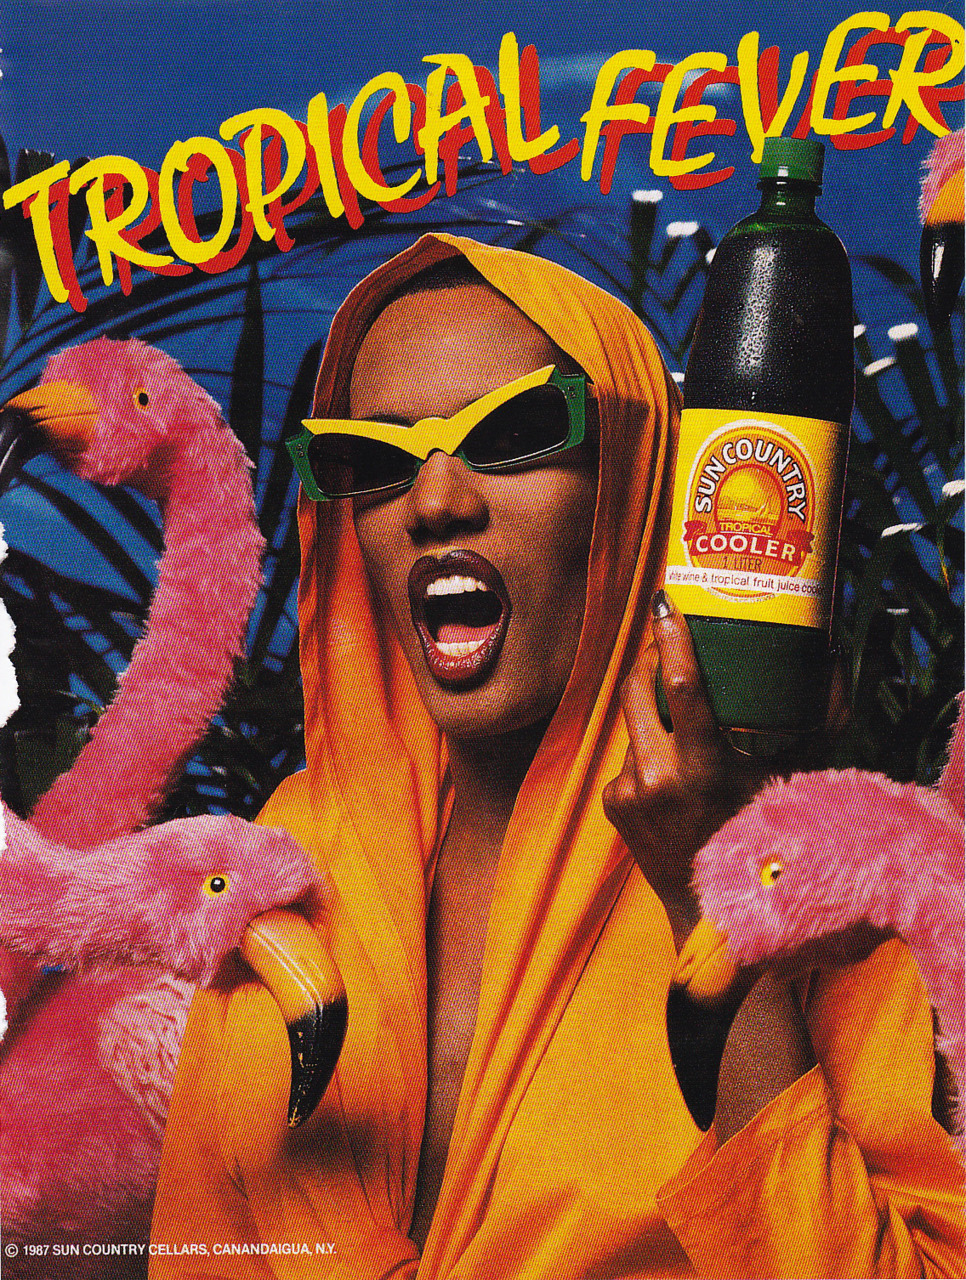 myneitherworld:  Grace Jones for Tropical Fever, 1987